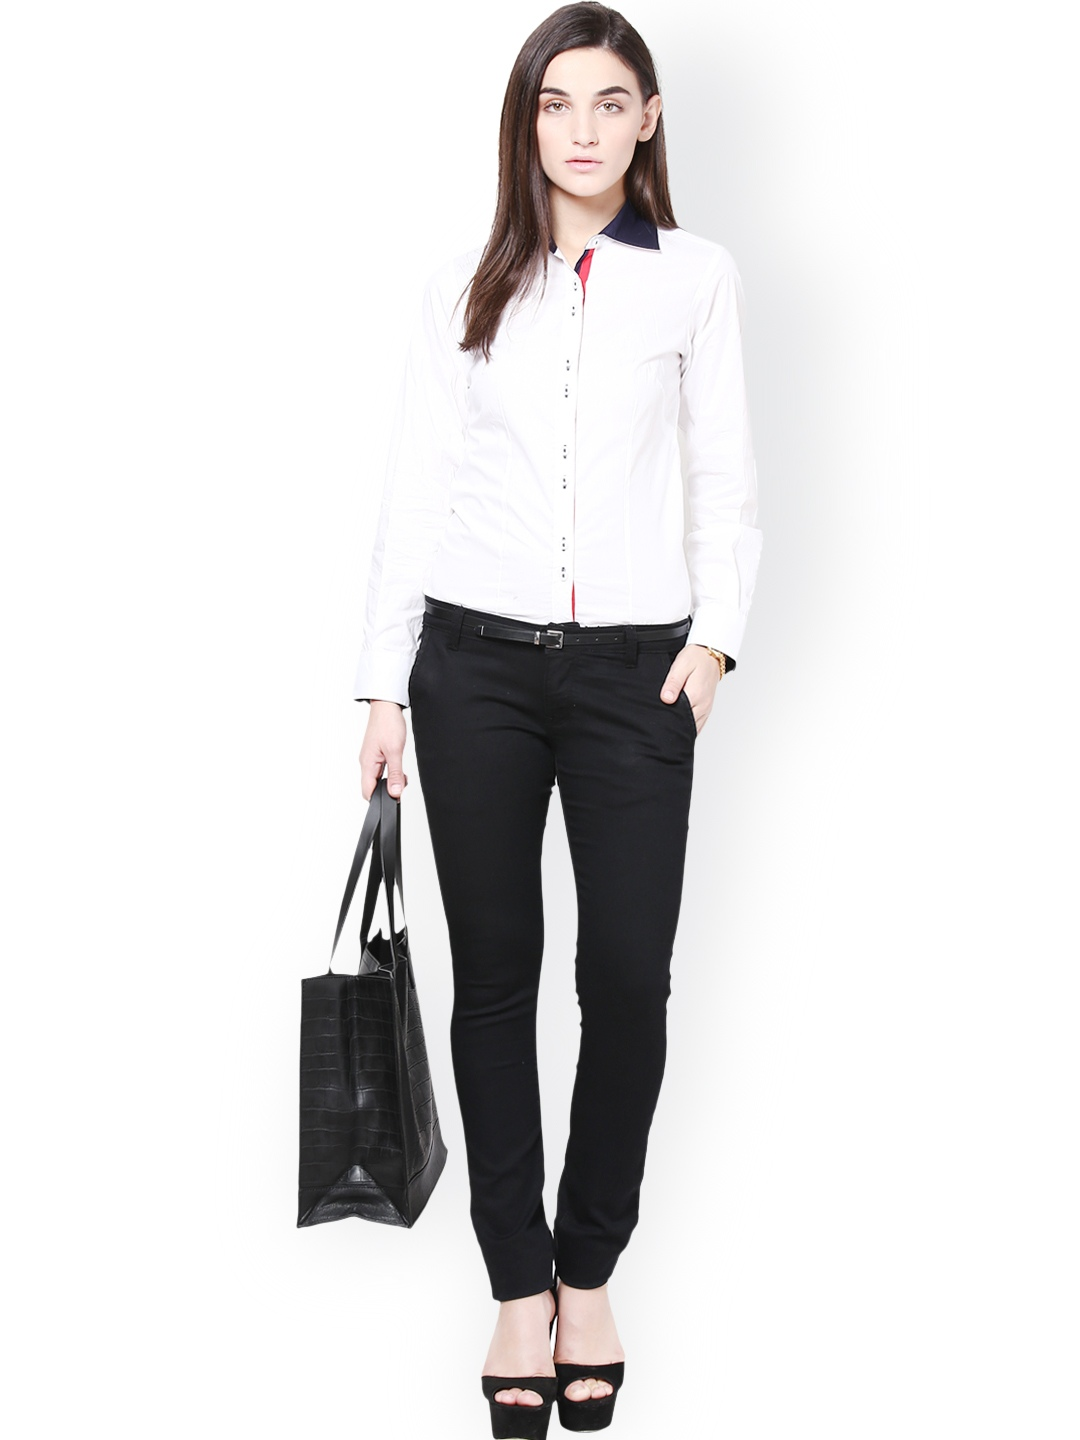 New Perfect Tips In Choosing Formal Pants For Women Online Shopping